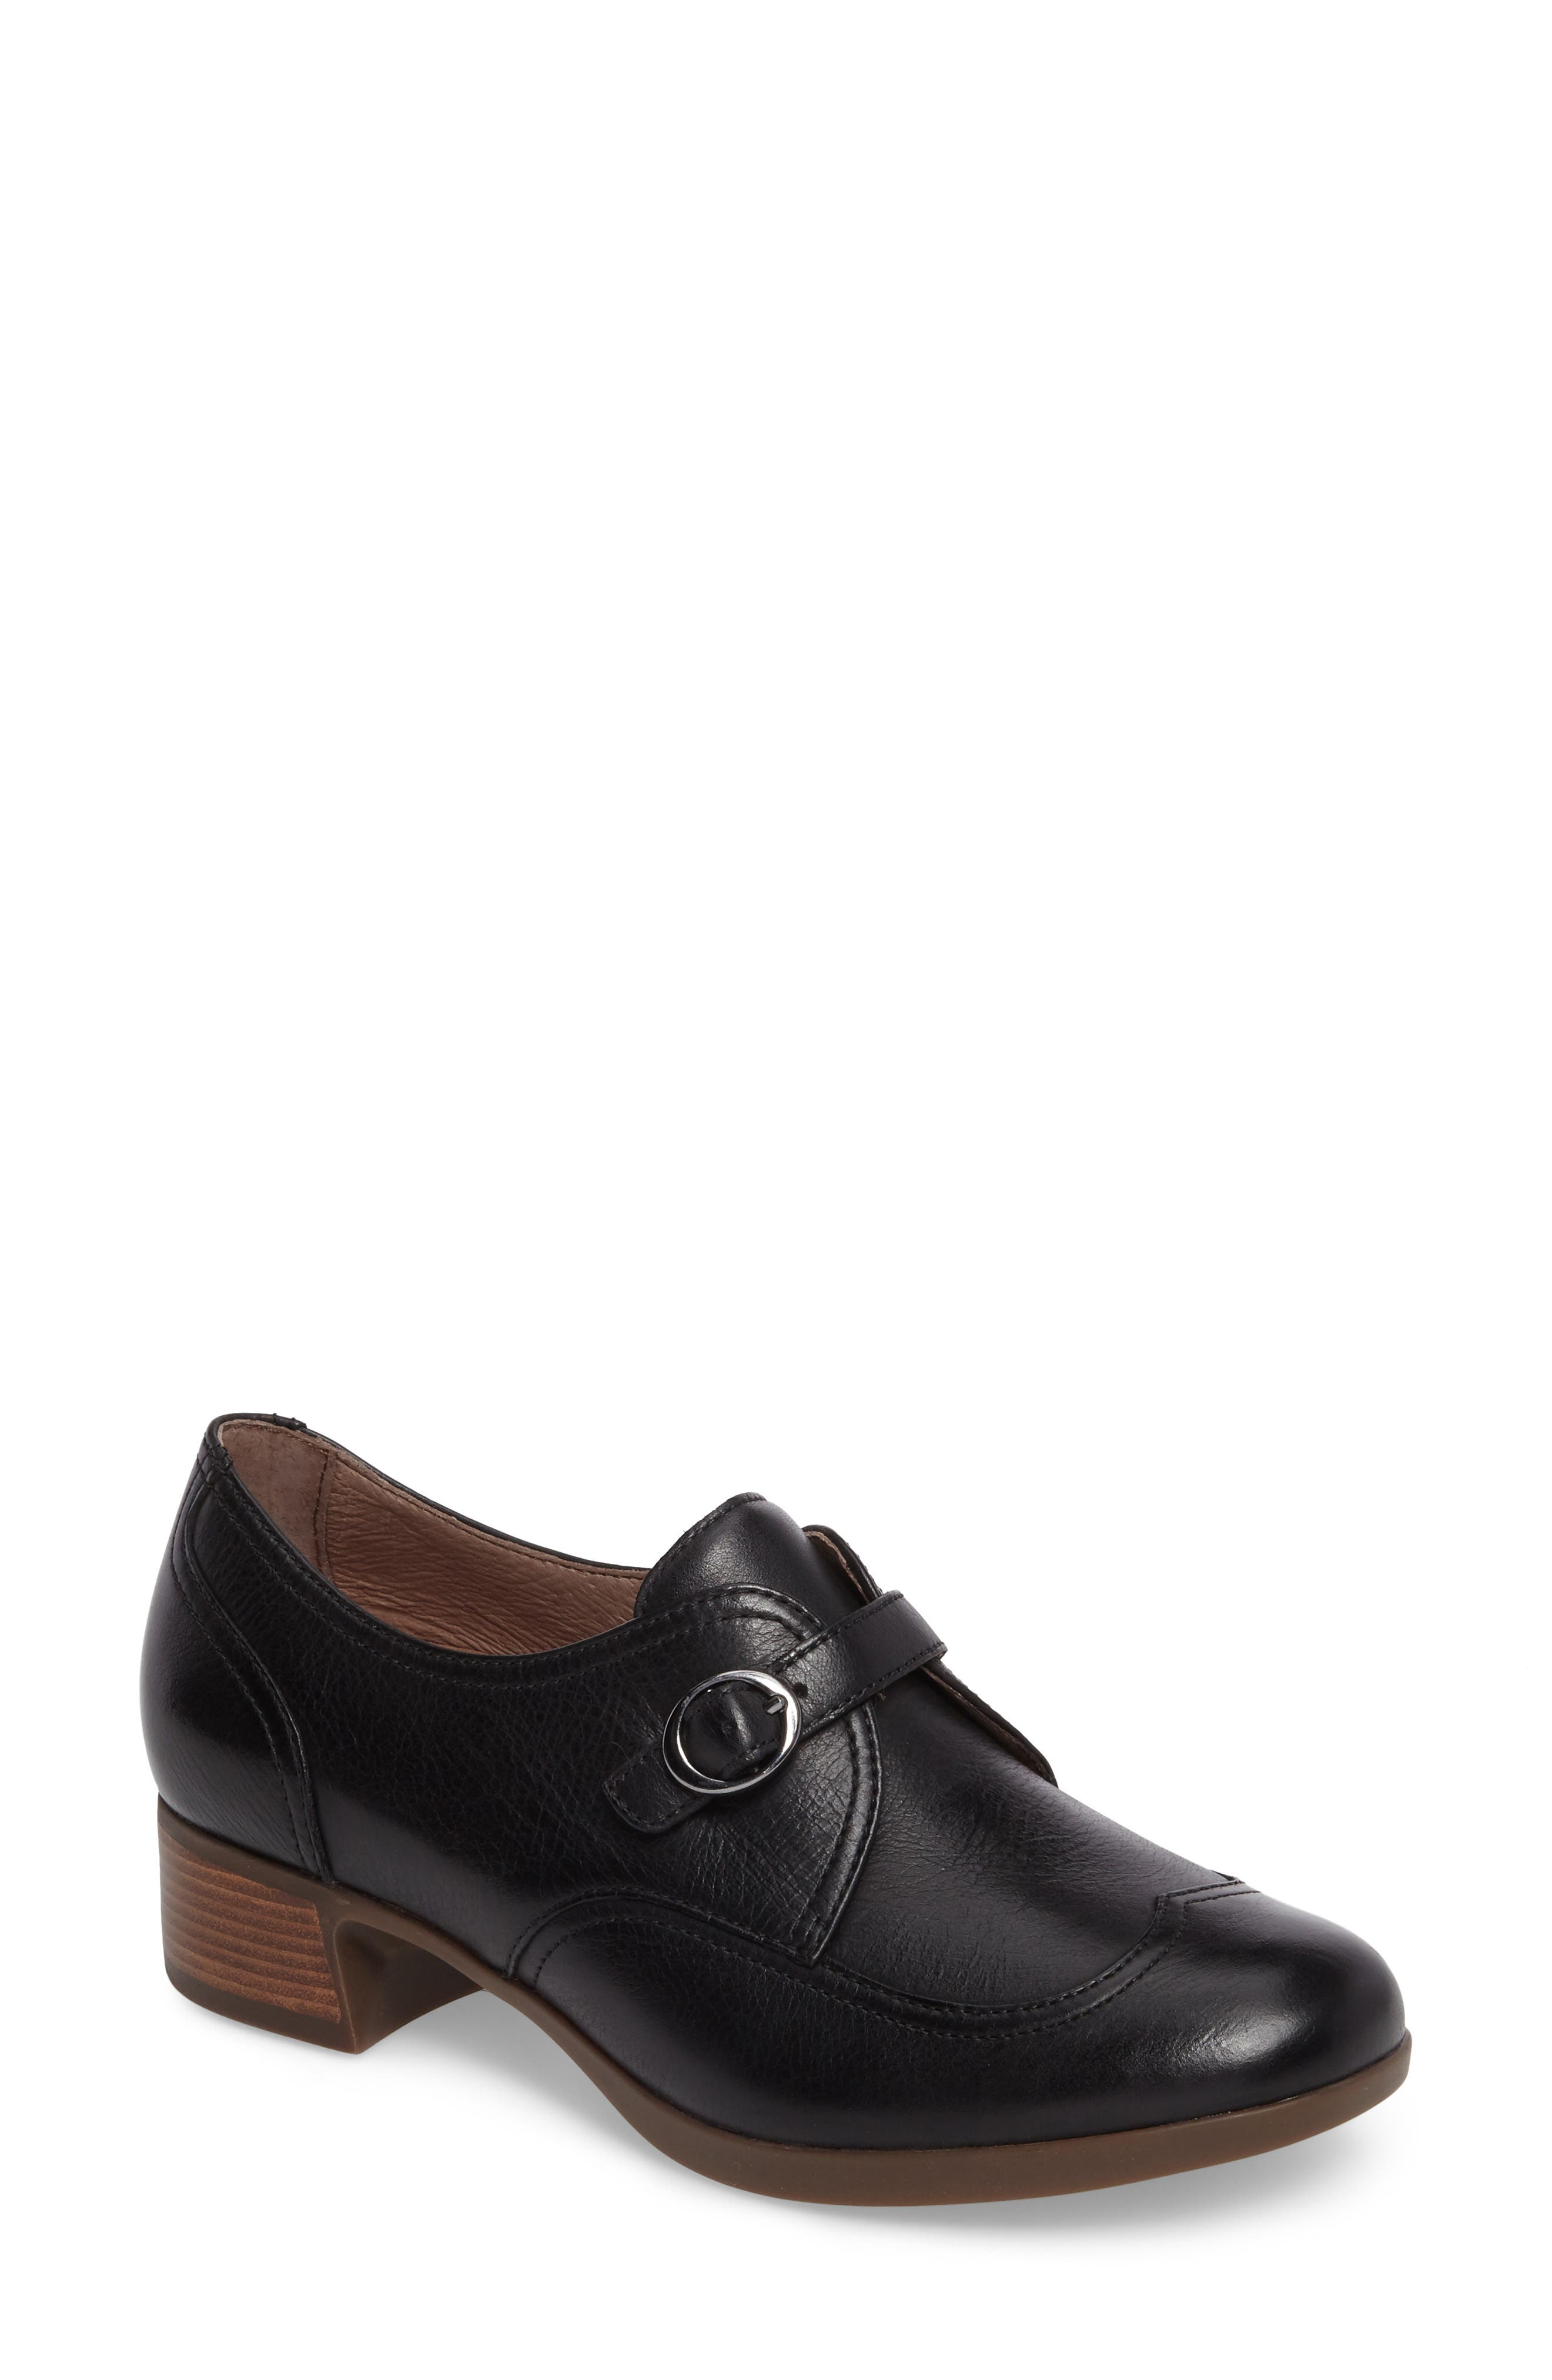 Main Image - Dansko Livie Wingtip Oxford (Women)